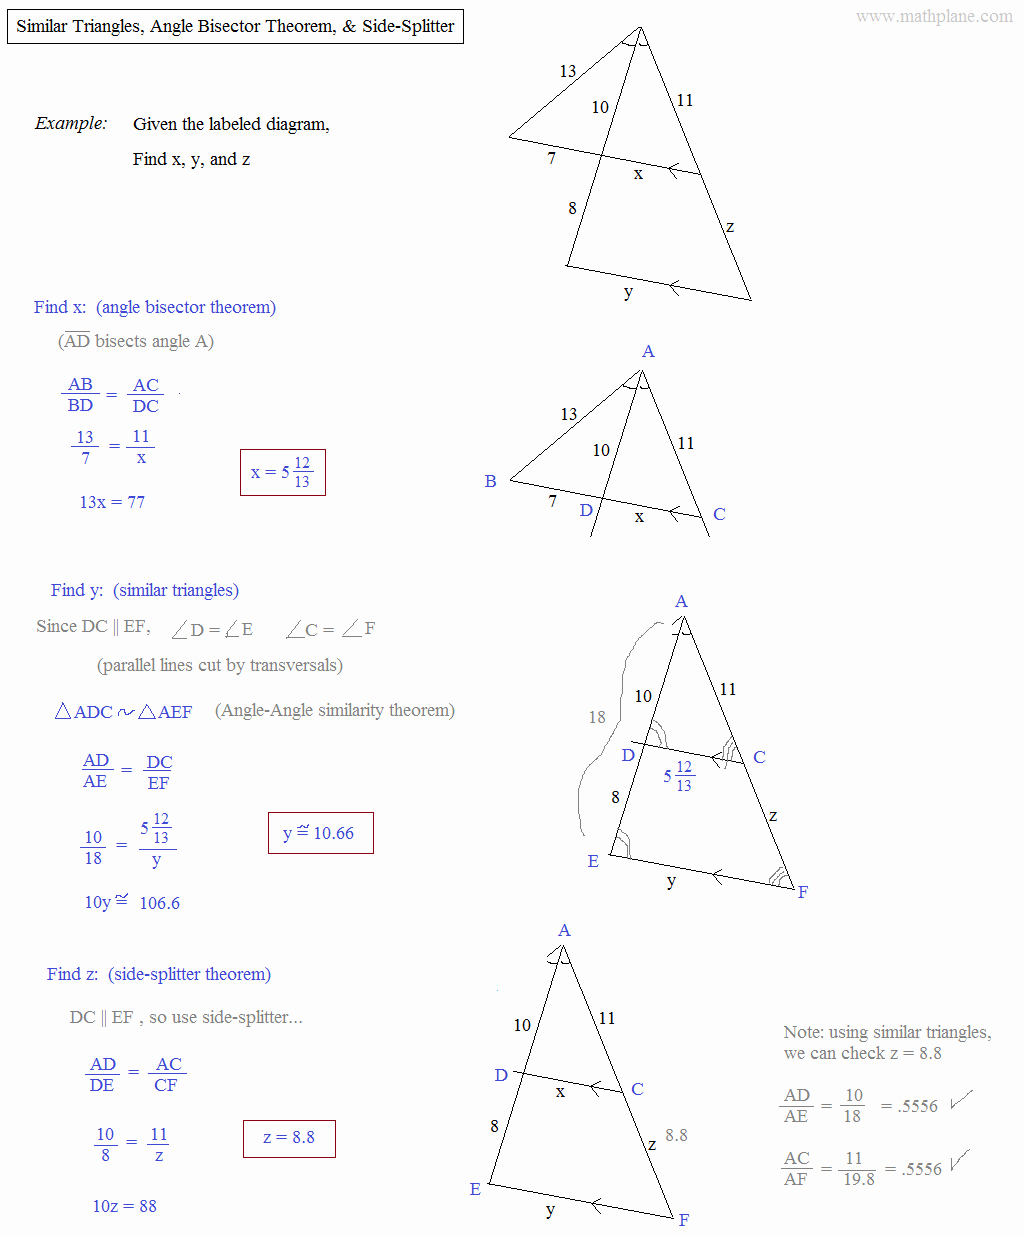 Angle Bisector theorem Worksheet Elegant Math Plane Similar Triangles & Ratios